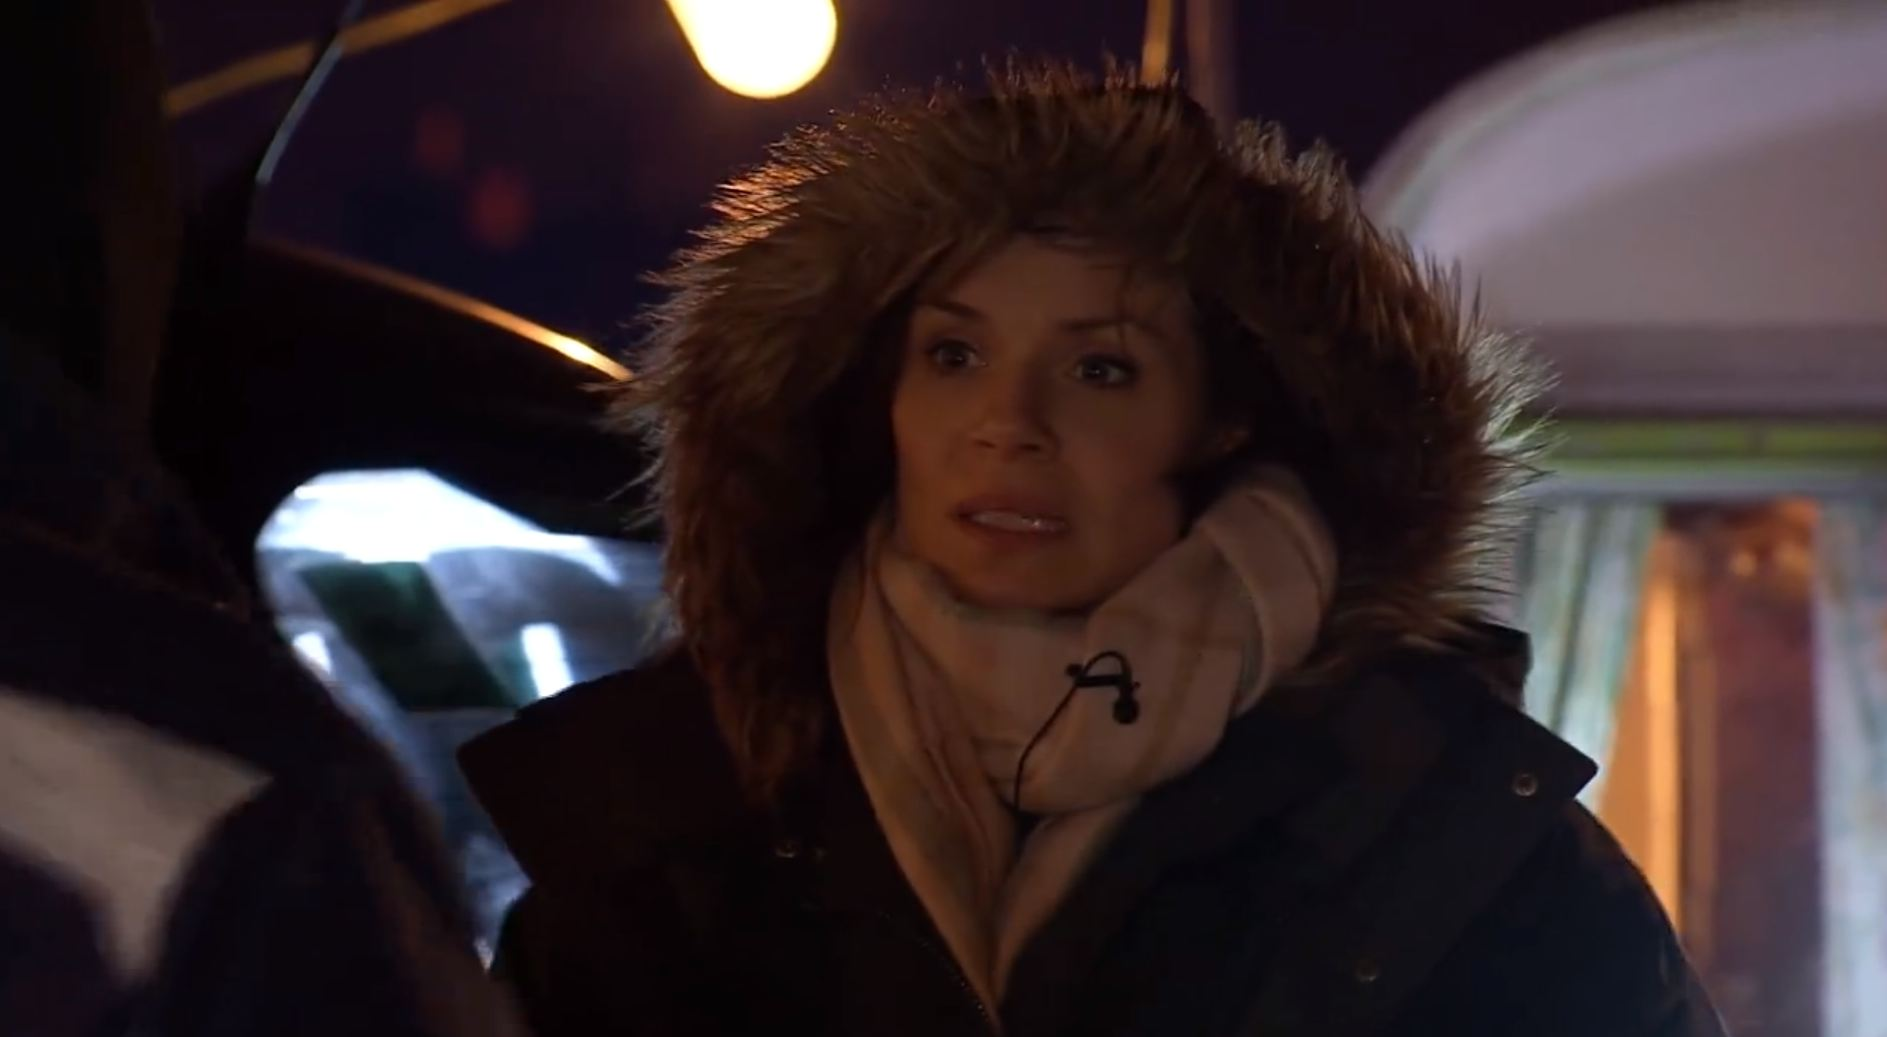 EastEnders bosses brought Emma Summerhayes back from the dead to hide Kathy Beale twist